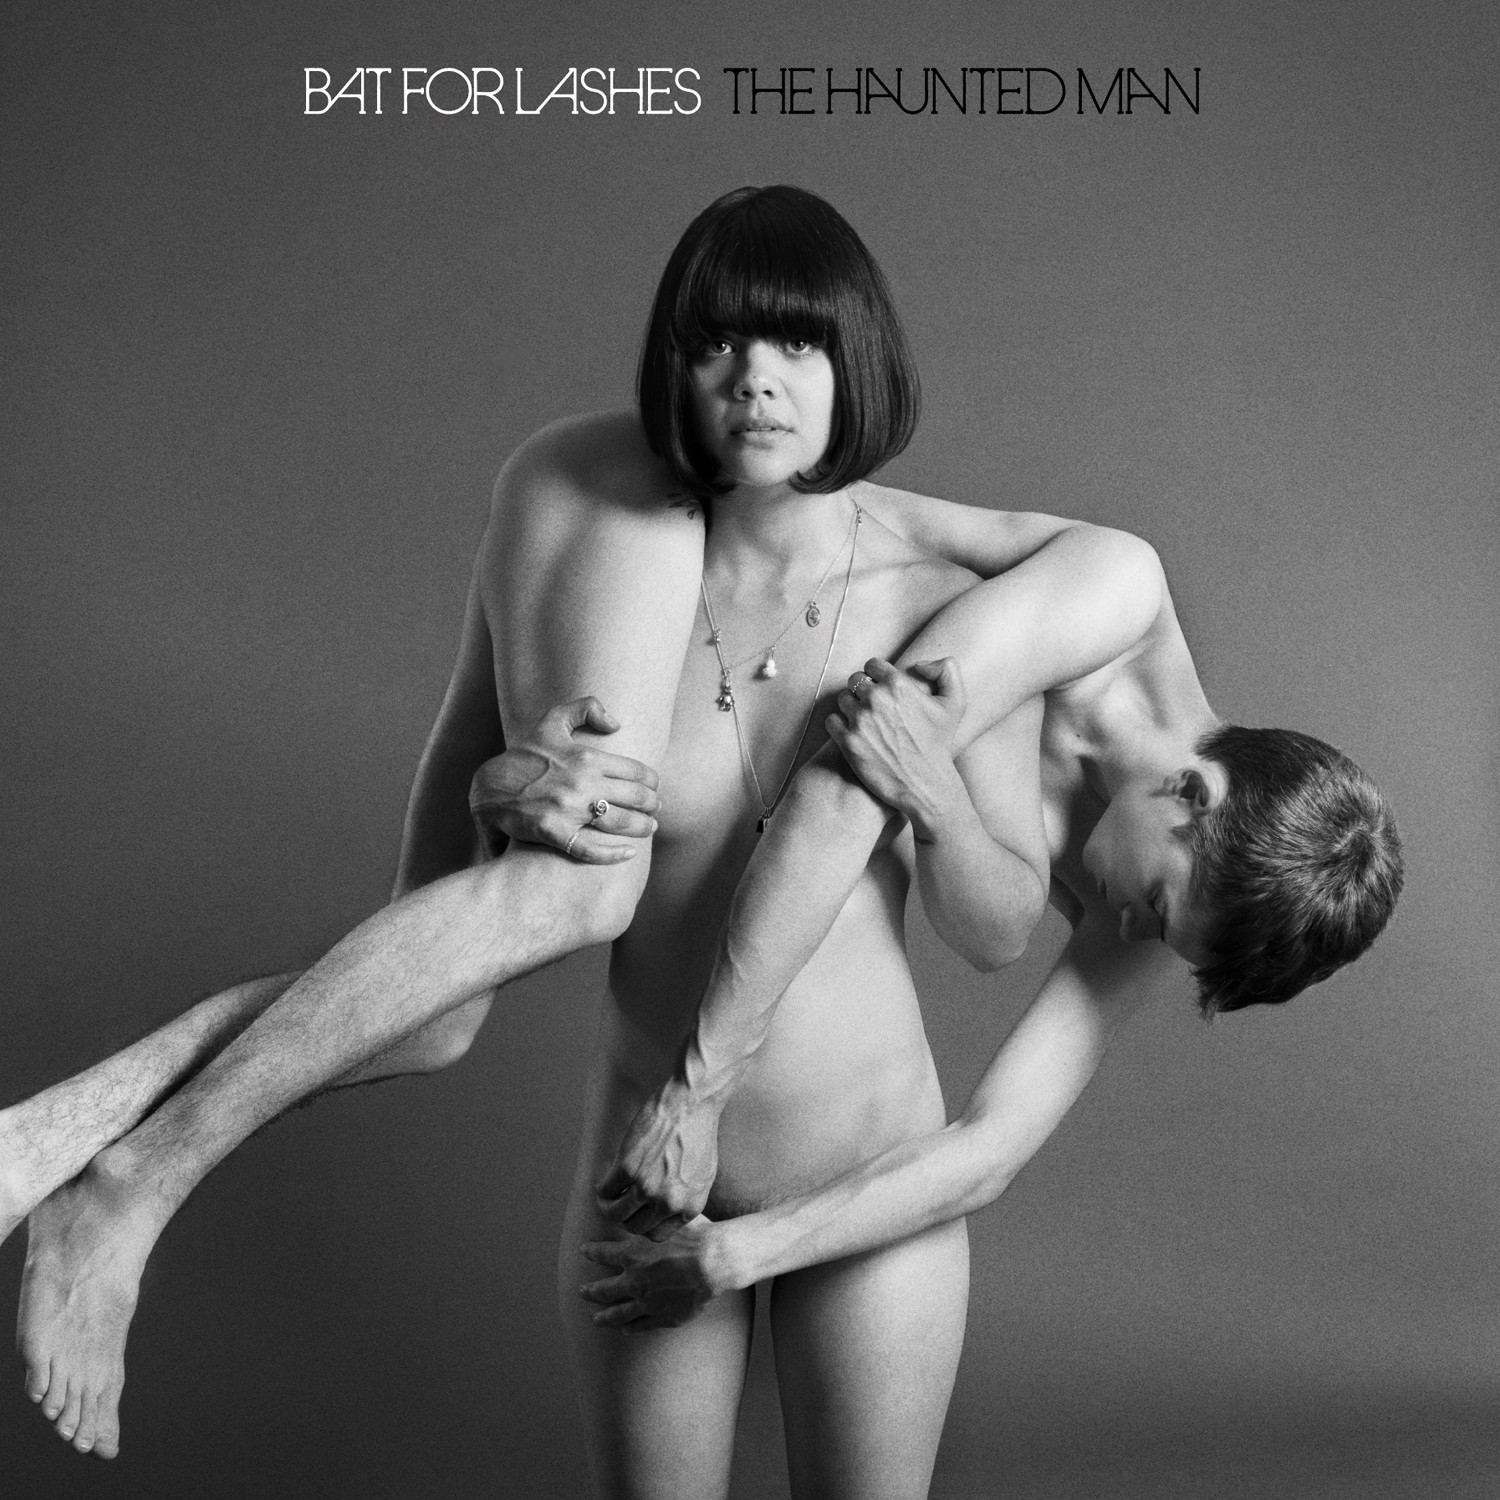 Bat for lashes the haunted man download free